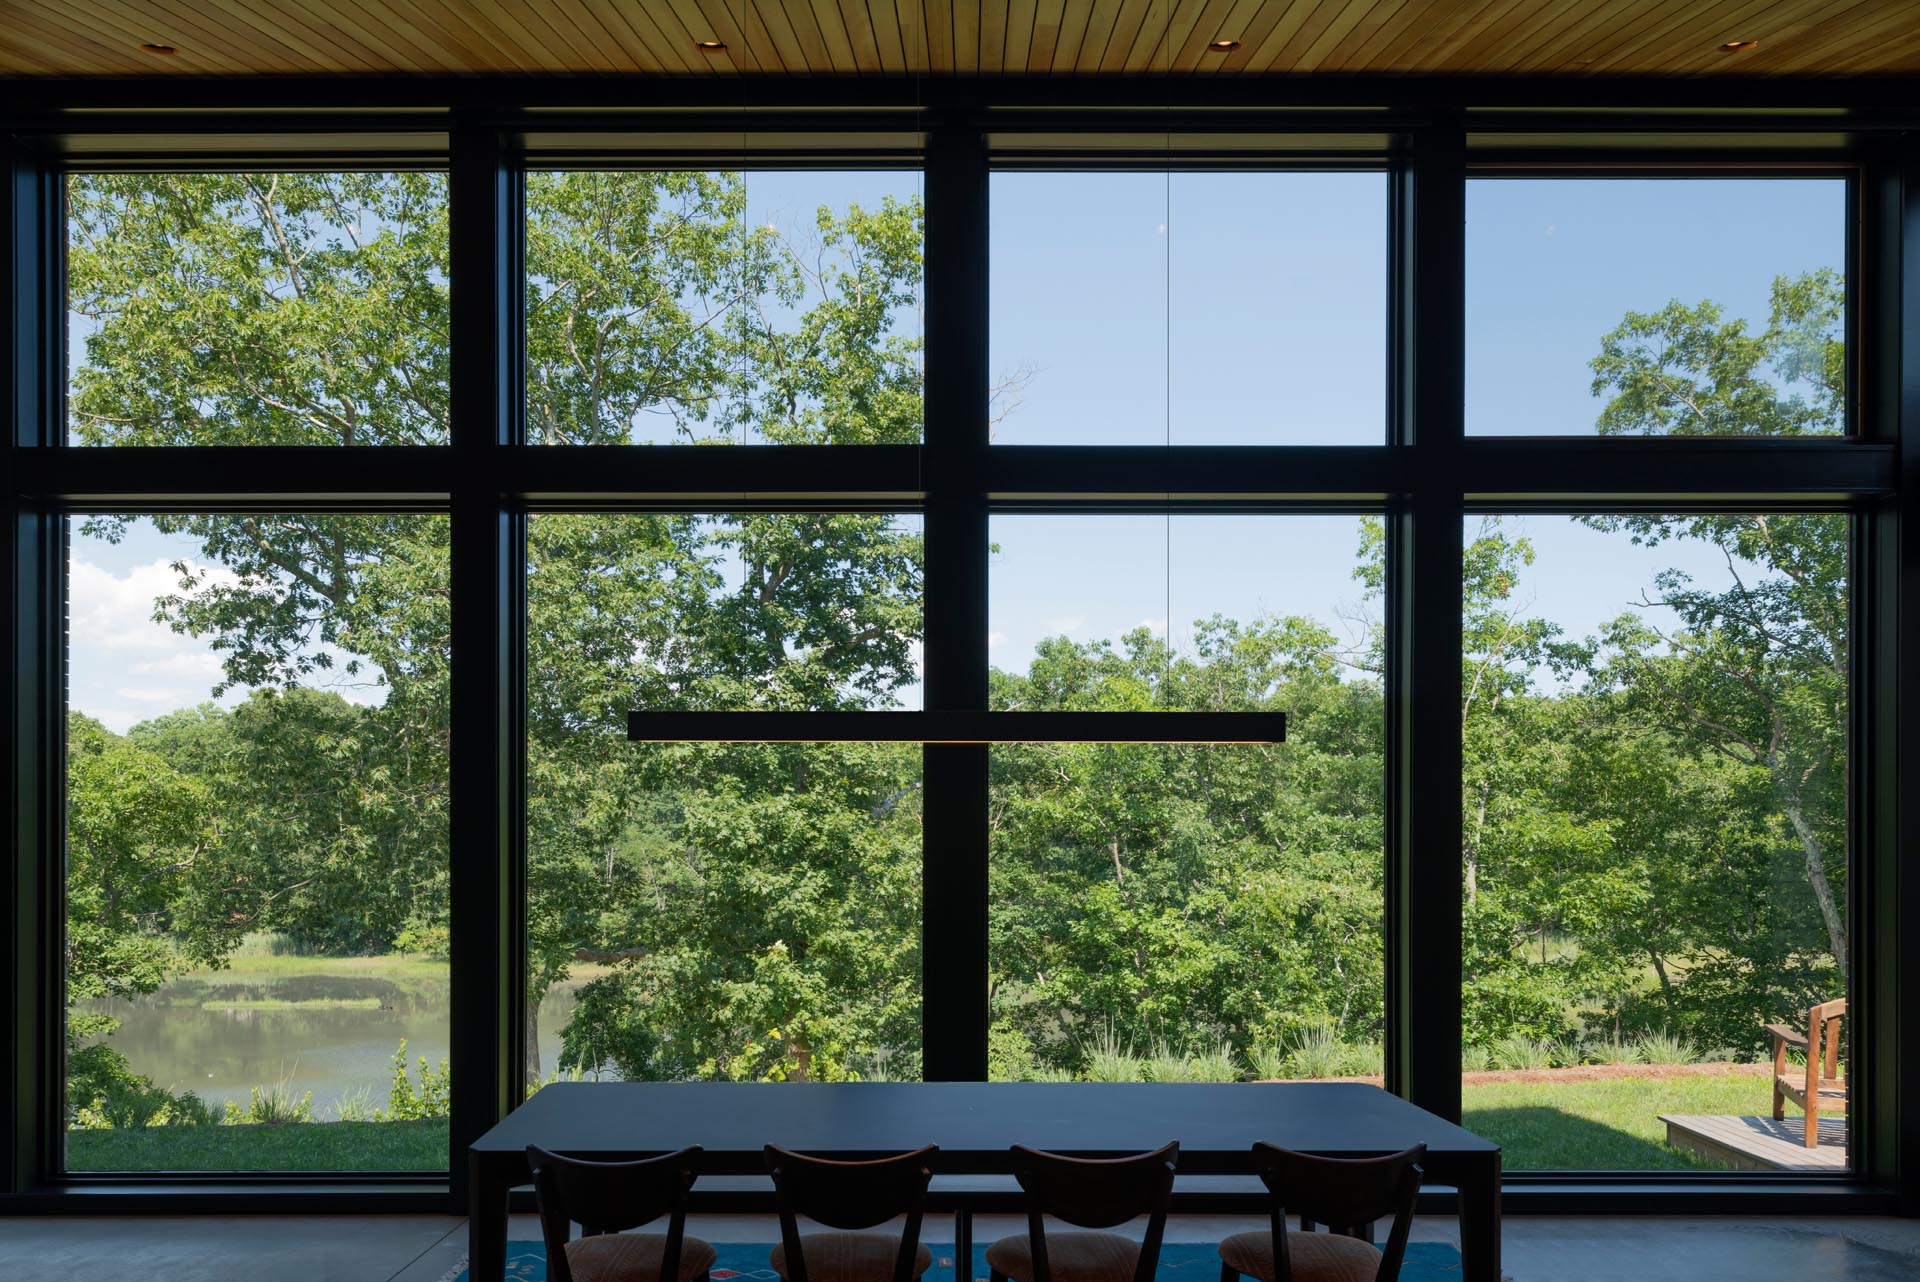 Floor to ceiling windows provide views of the marshland.